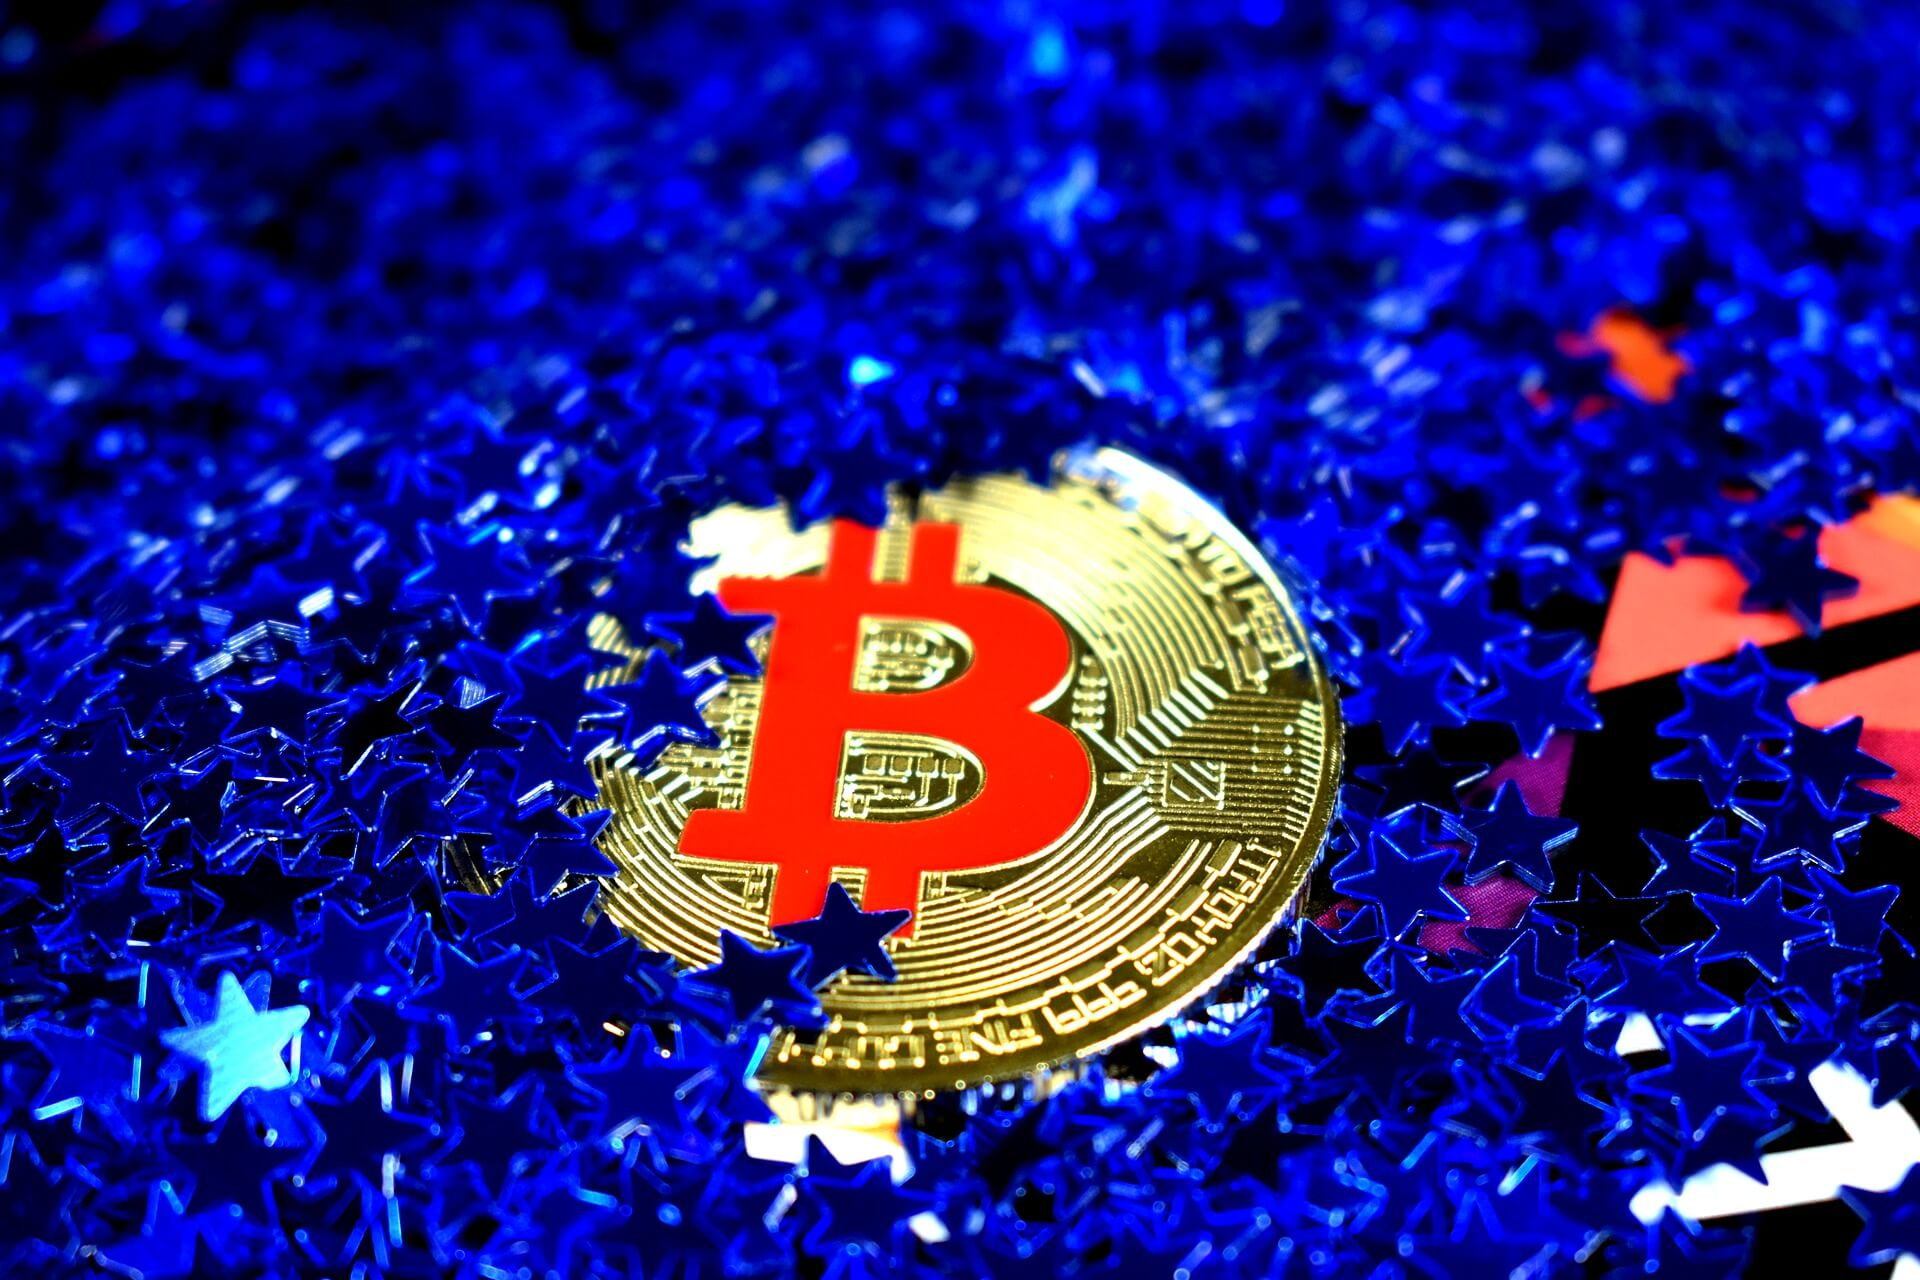 Israeli court rules Bitcoin is an asset not a currency for now